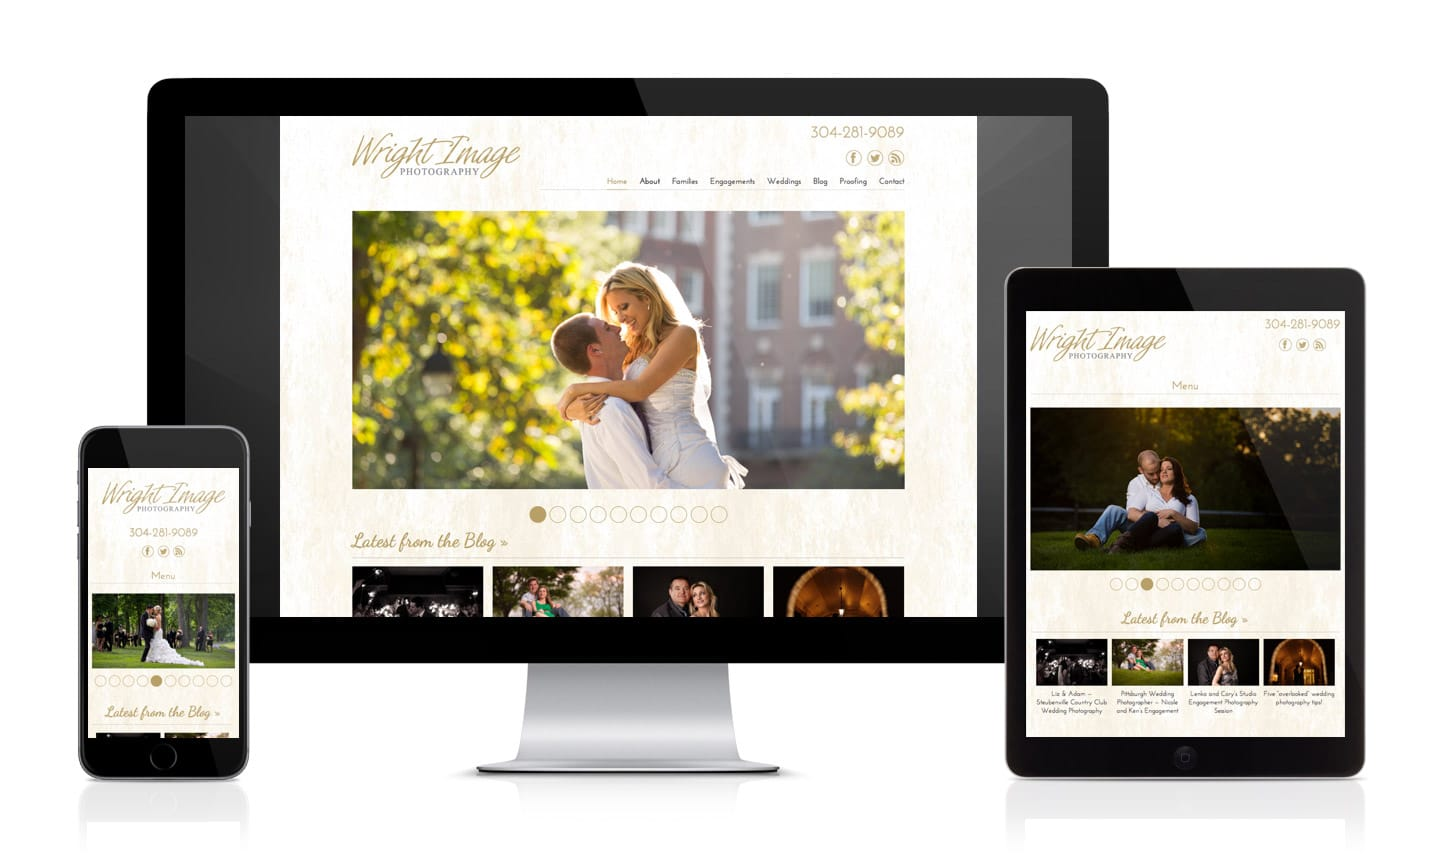 Wright Image Photography Website